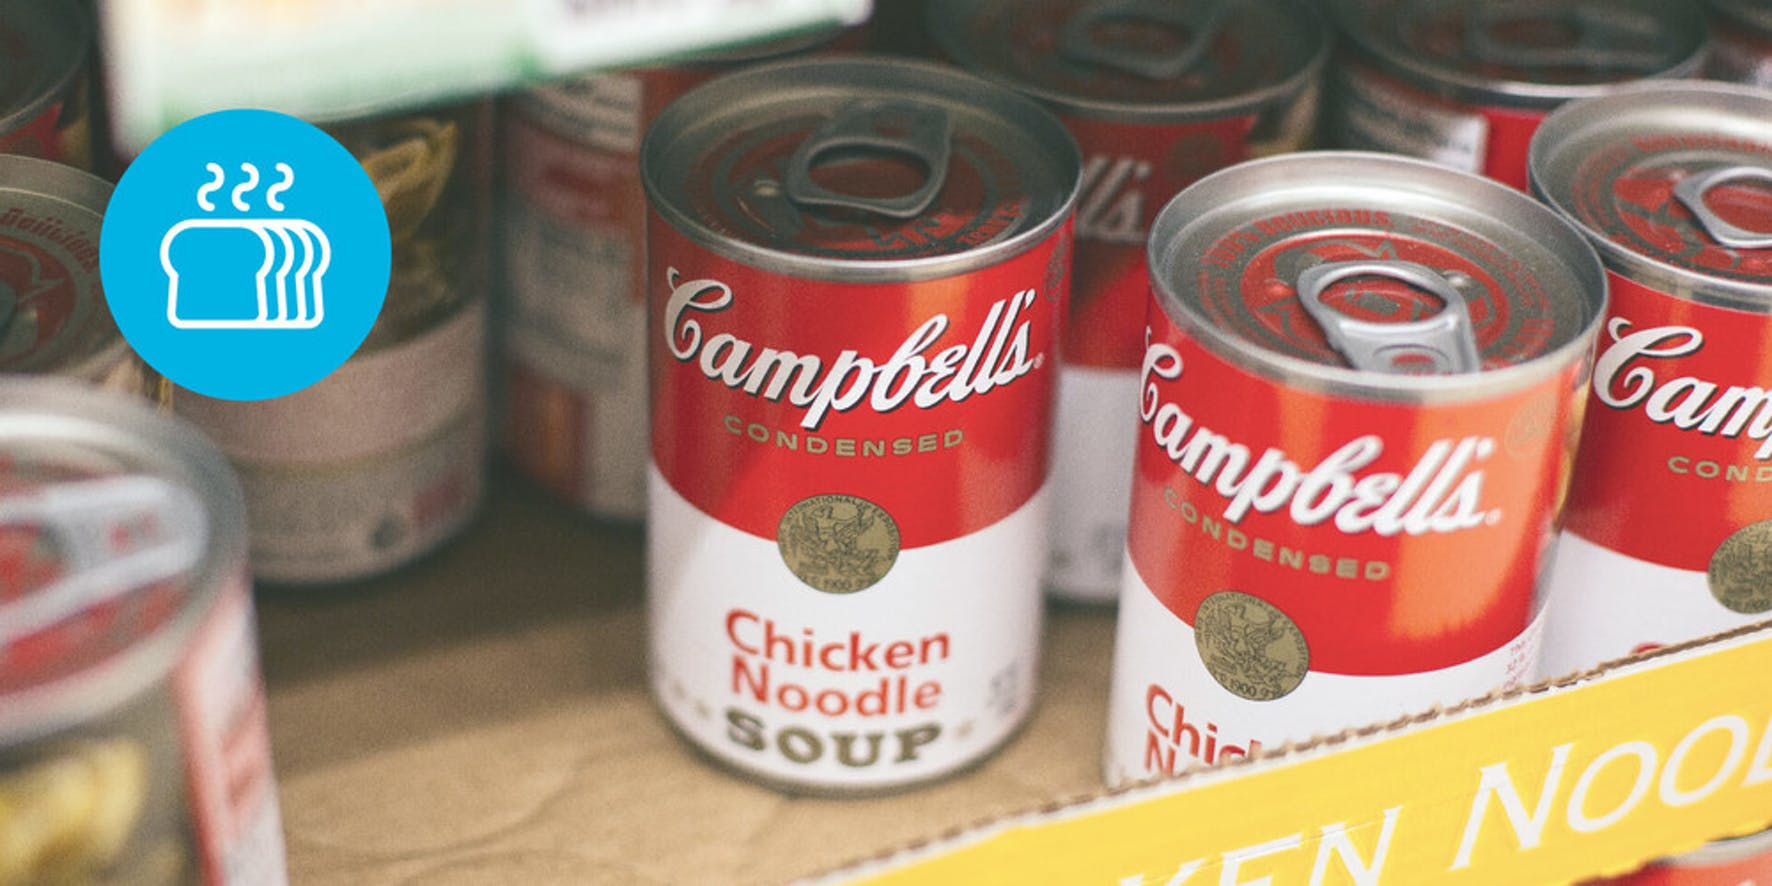 Campbell's chicken noodle soup in a box on a shelf in the grocery store